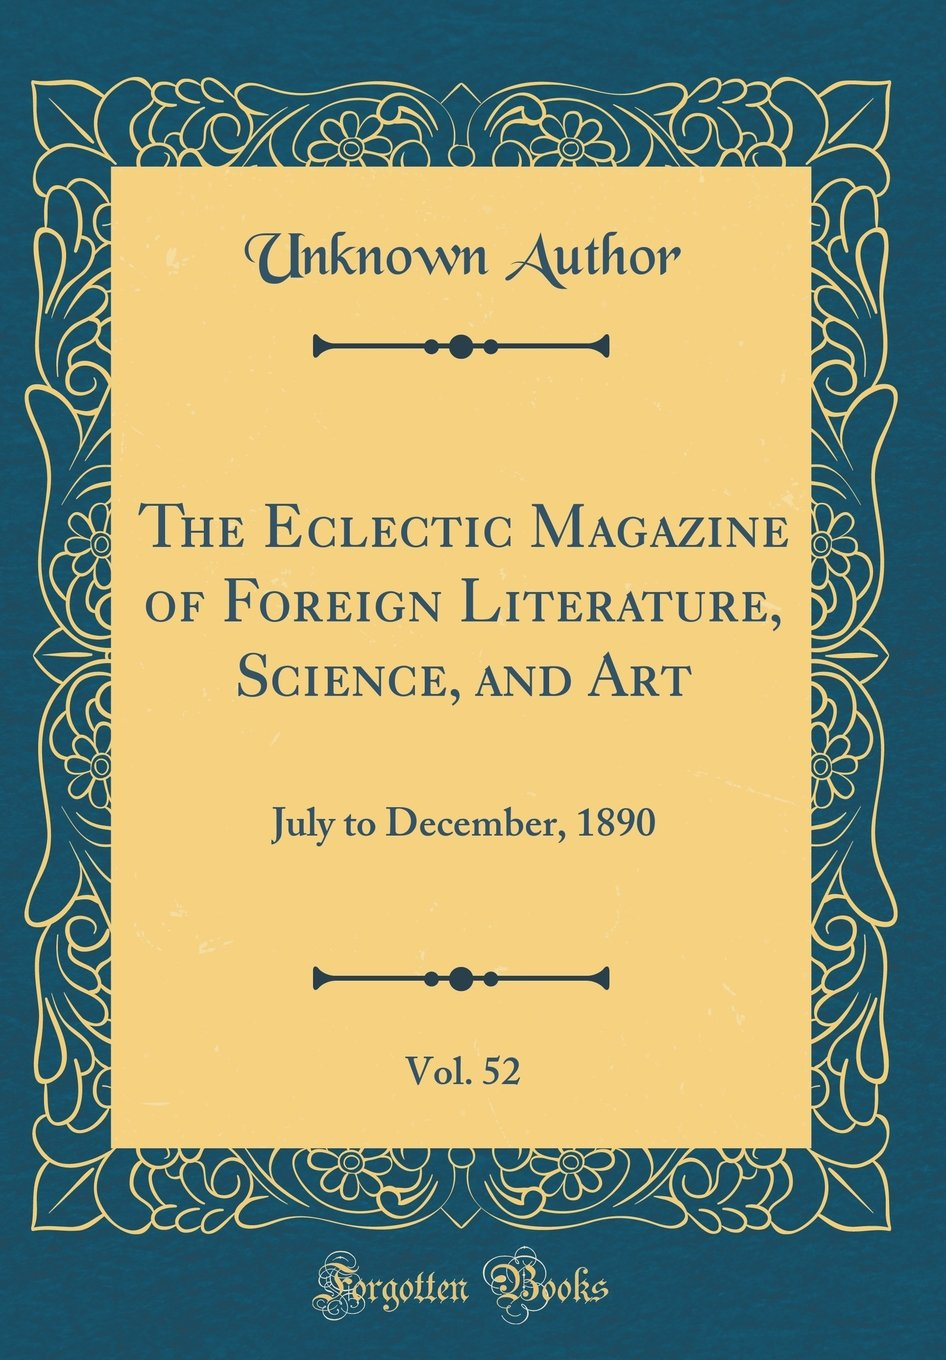 The Eclectic Magazine of Foreign Literature, Science, and Art, Vol. 52: July to December, 1890 (Classic Reprint) PDF